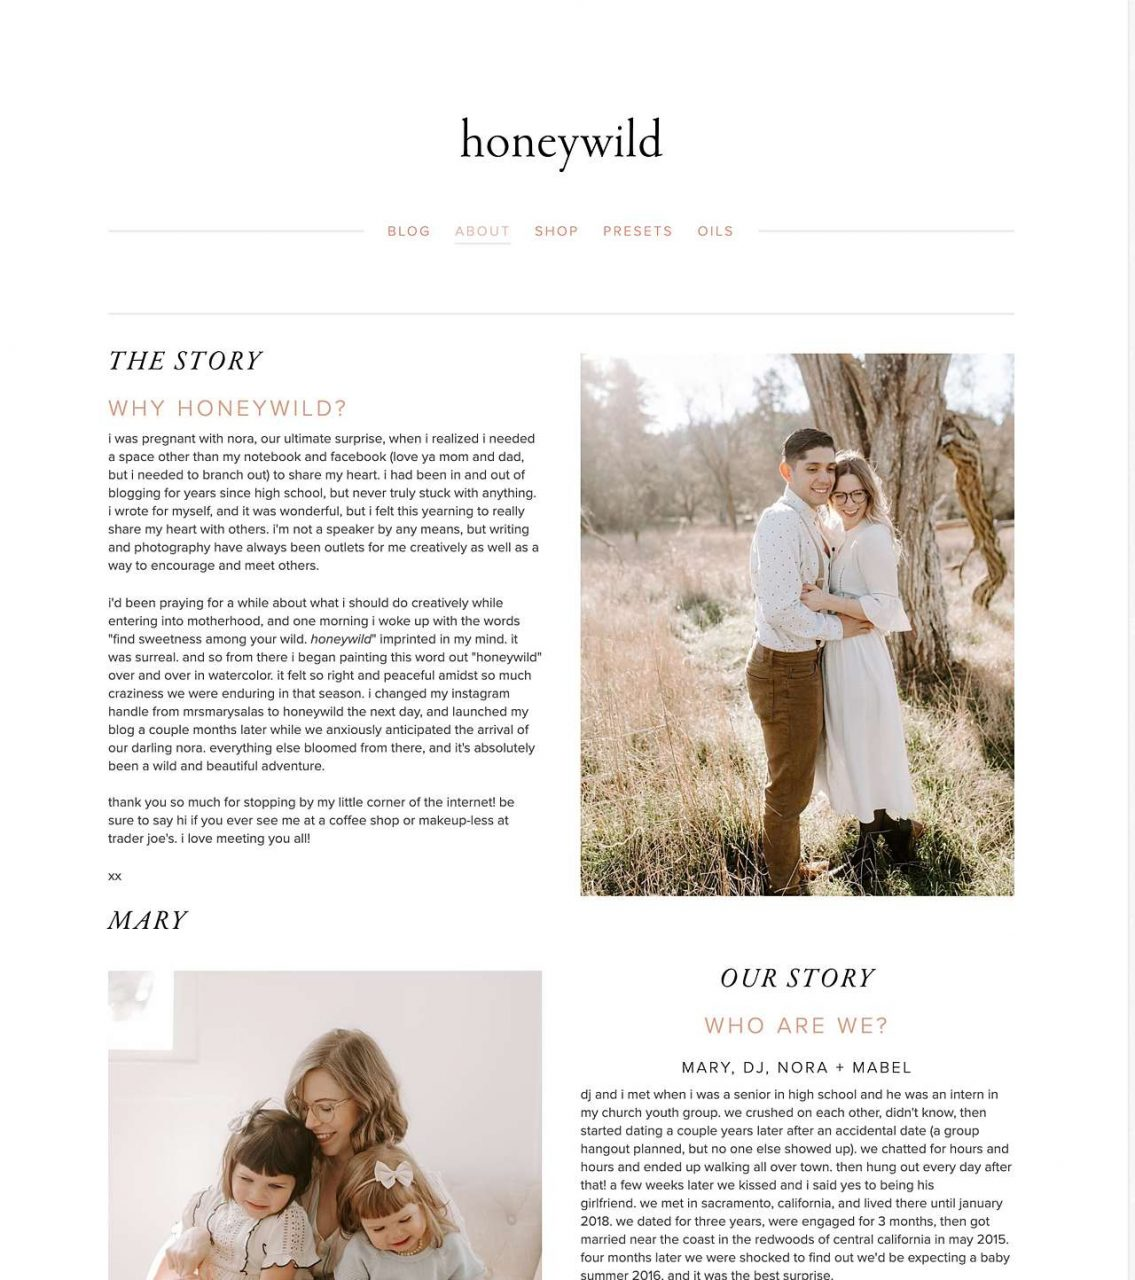 honeywild website